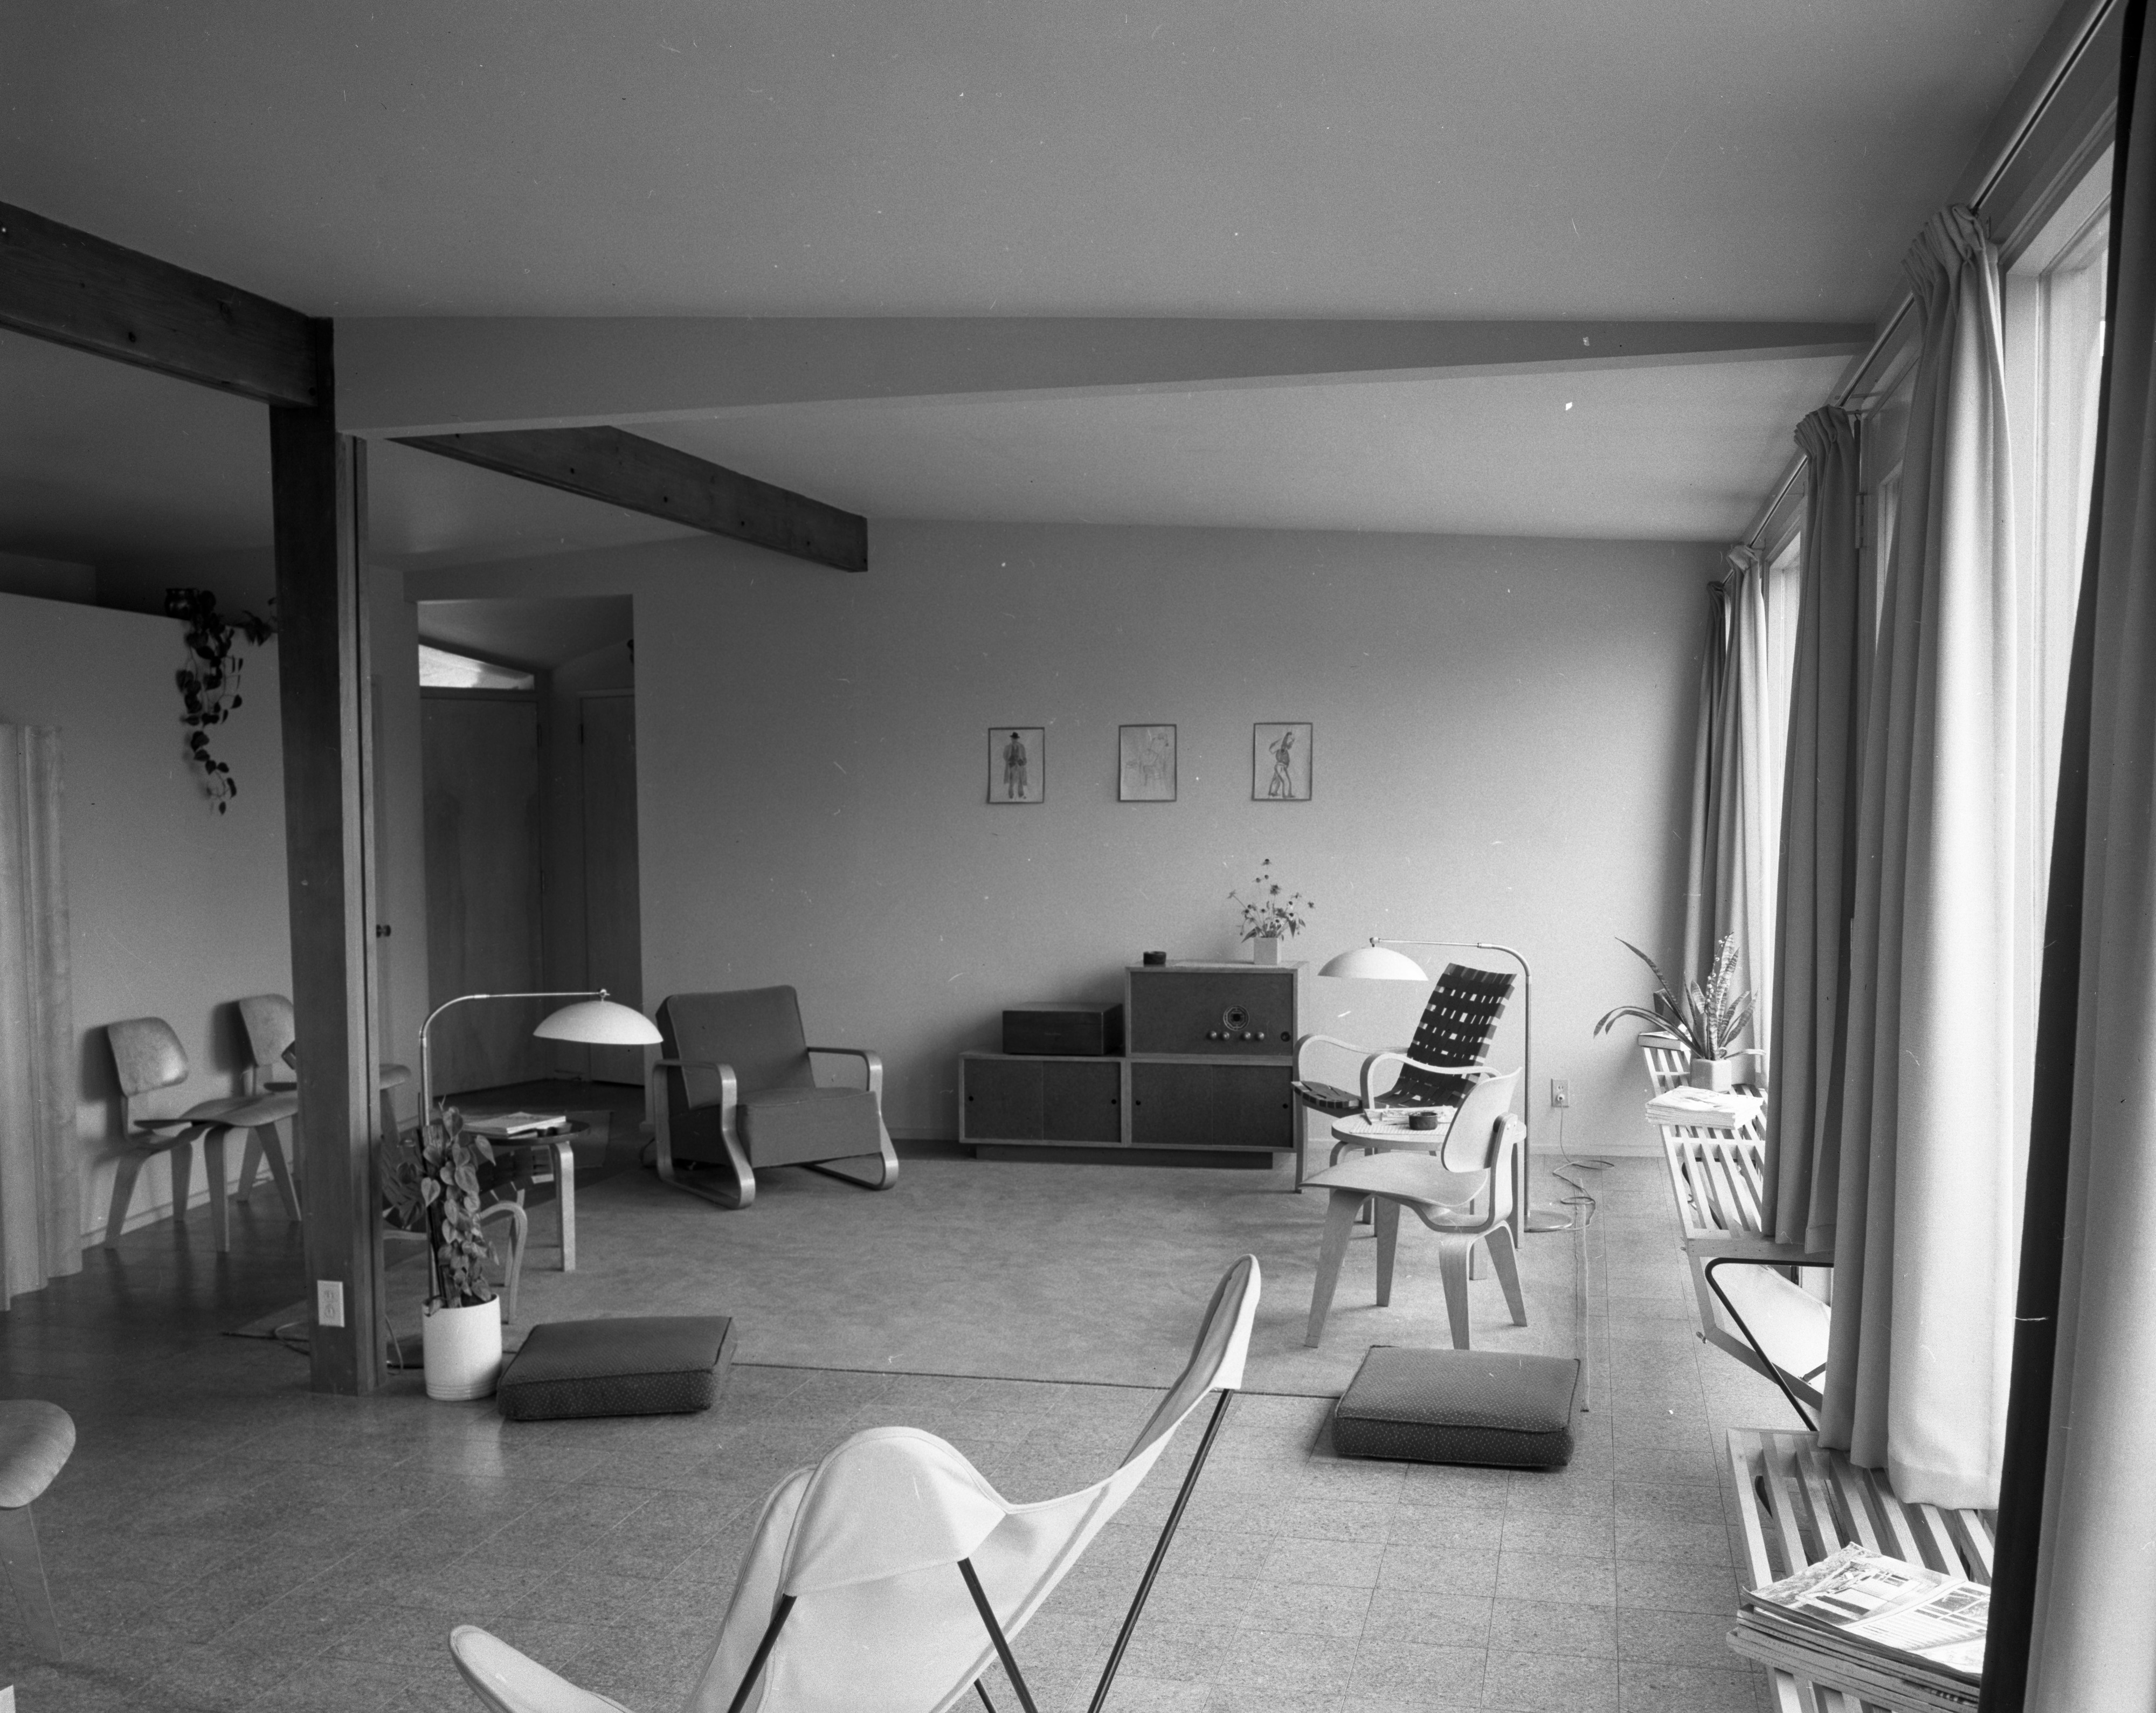 Open Space Is Key To Architect Richard M. Robinson Home On Huron View Blvd., July 1952 image